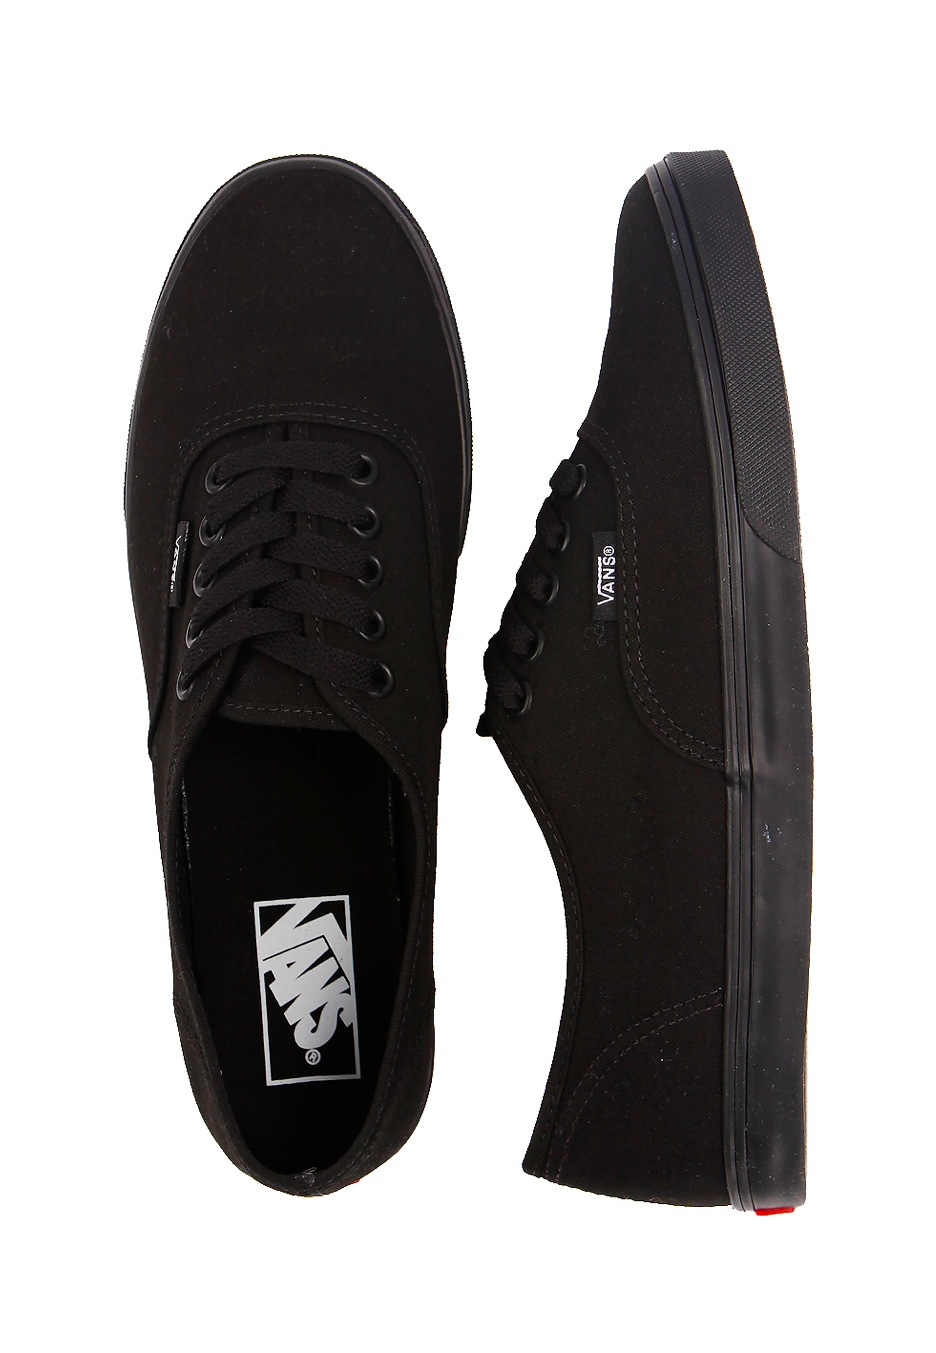 Vans - Authentic Lo Pro Black/Black - Girl Shoes - Impericon.com Worldwide